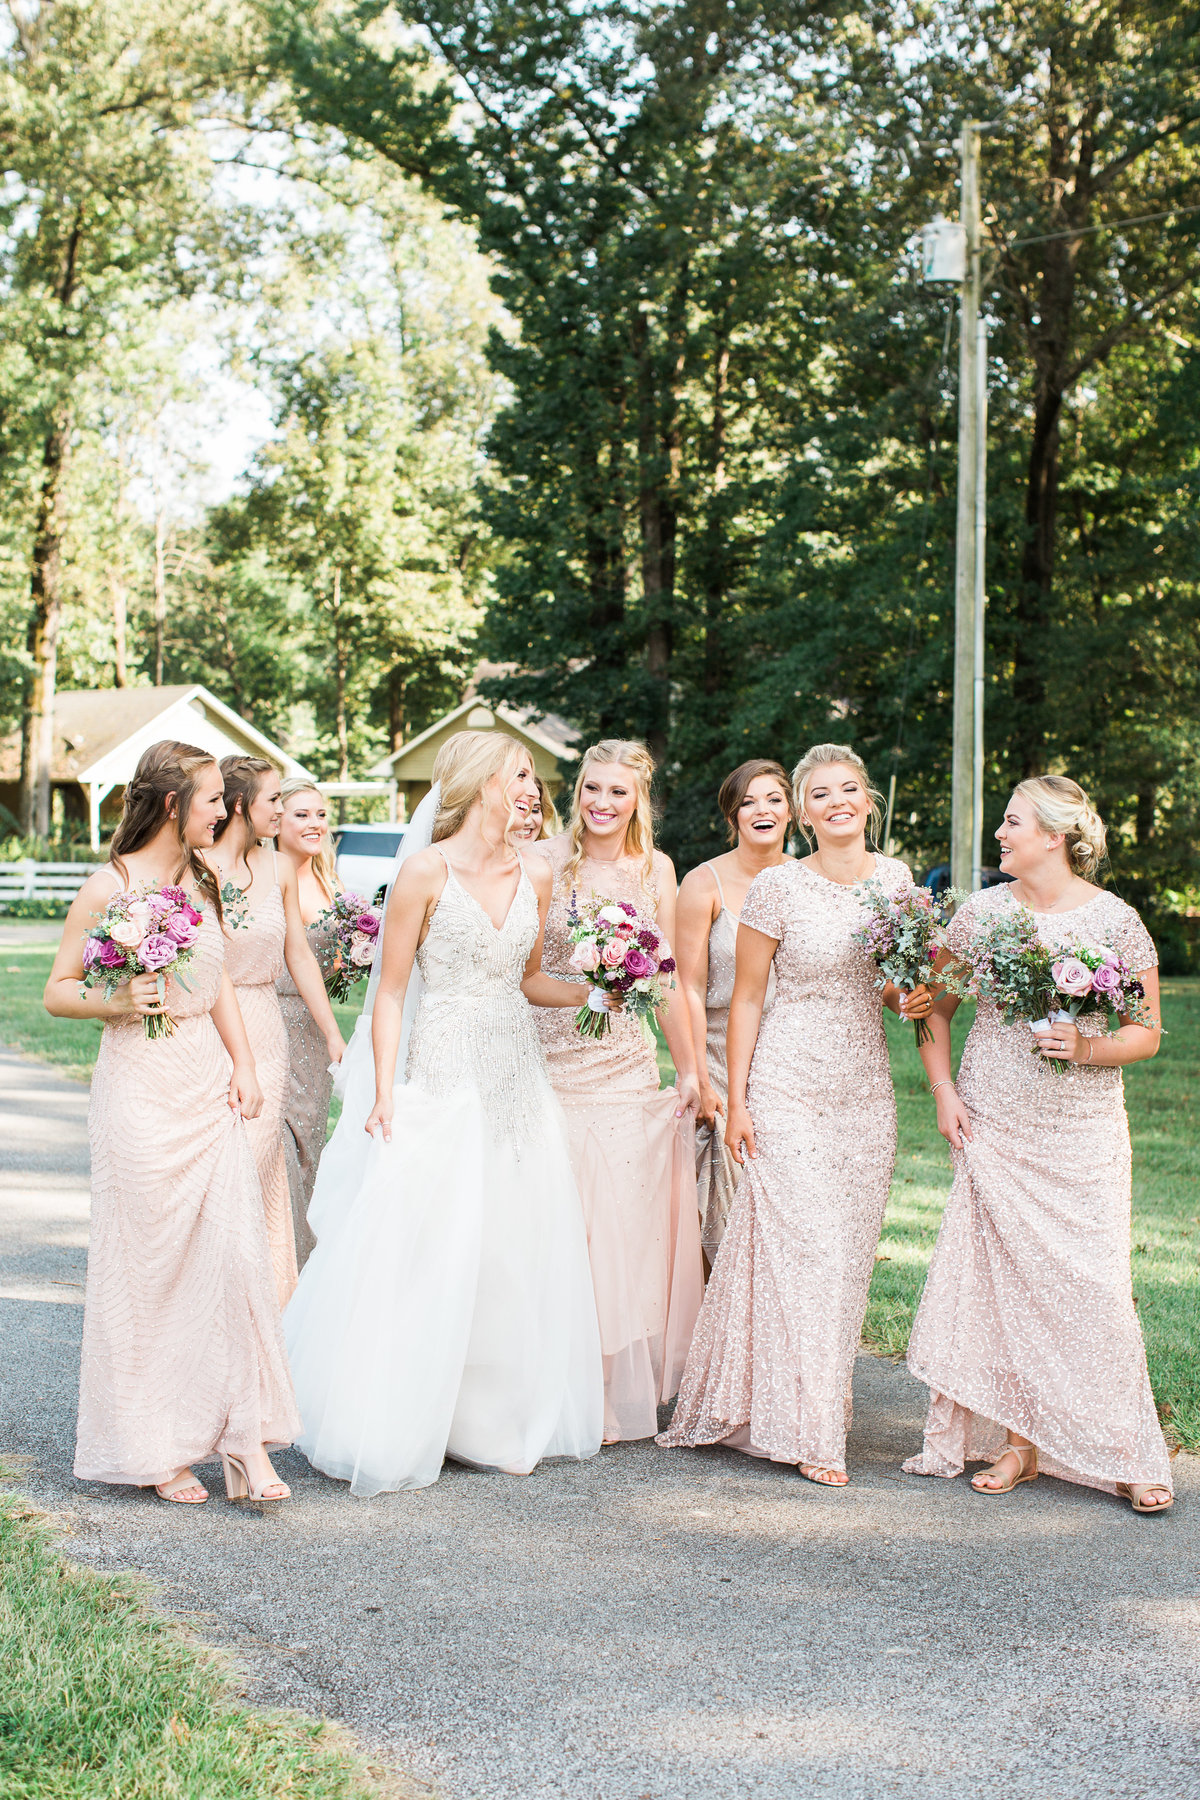 Eden & Will Wedding_Lindsay Ott Photography_Mississippi Wedding Photographer94